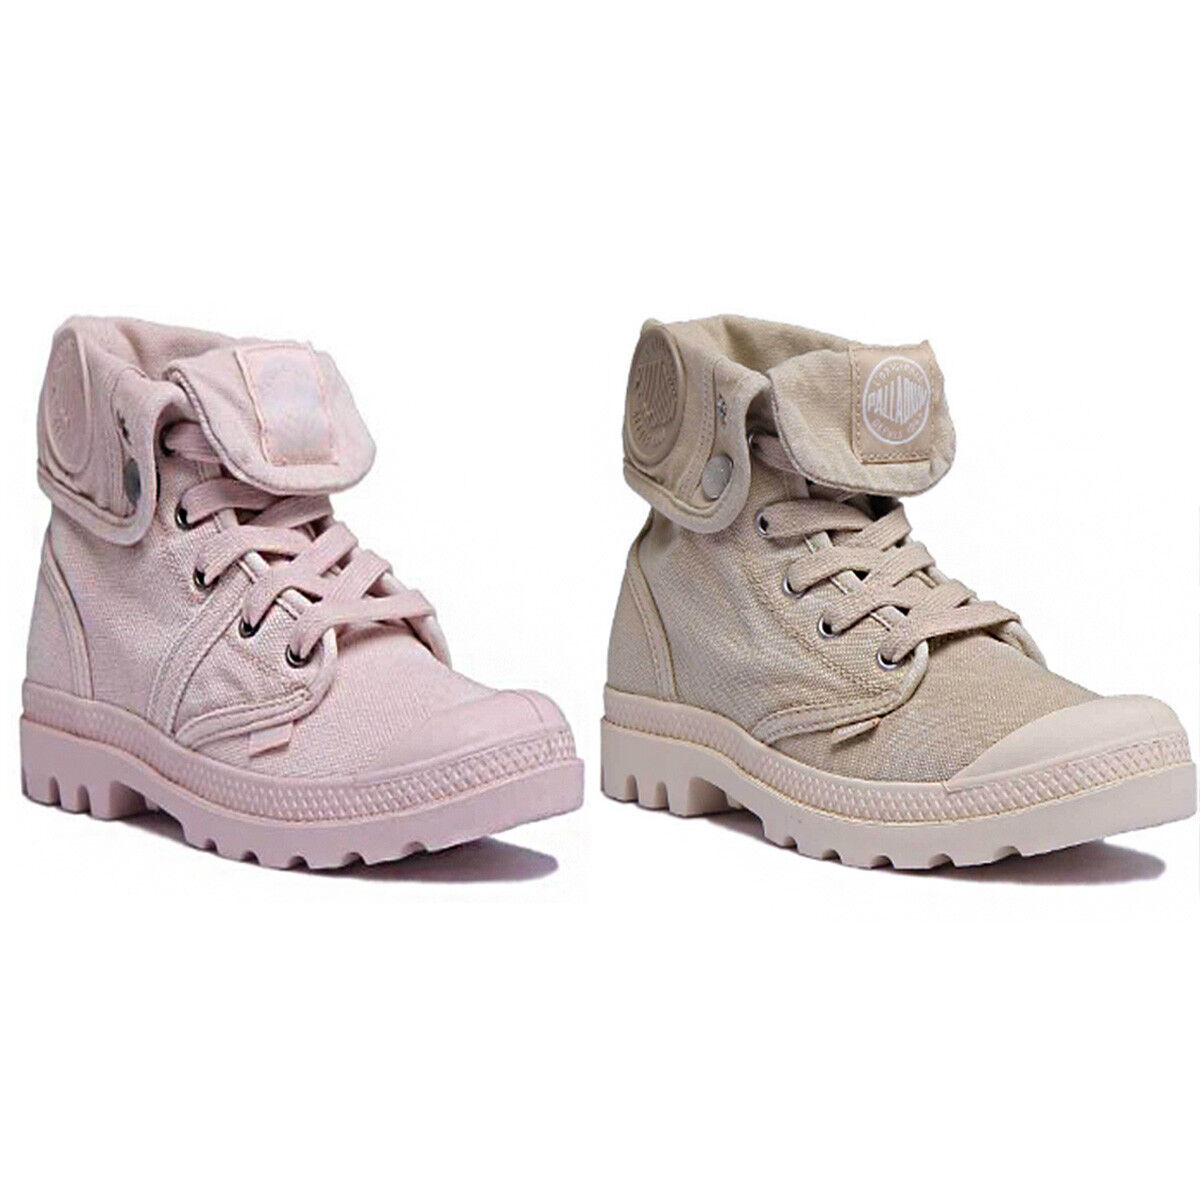 Palladium Pallabrouse Bag Damenschuhe Light Pink Stiefel Canvas Stiefel Pink Größe UK 3 - 8 aabe68